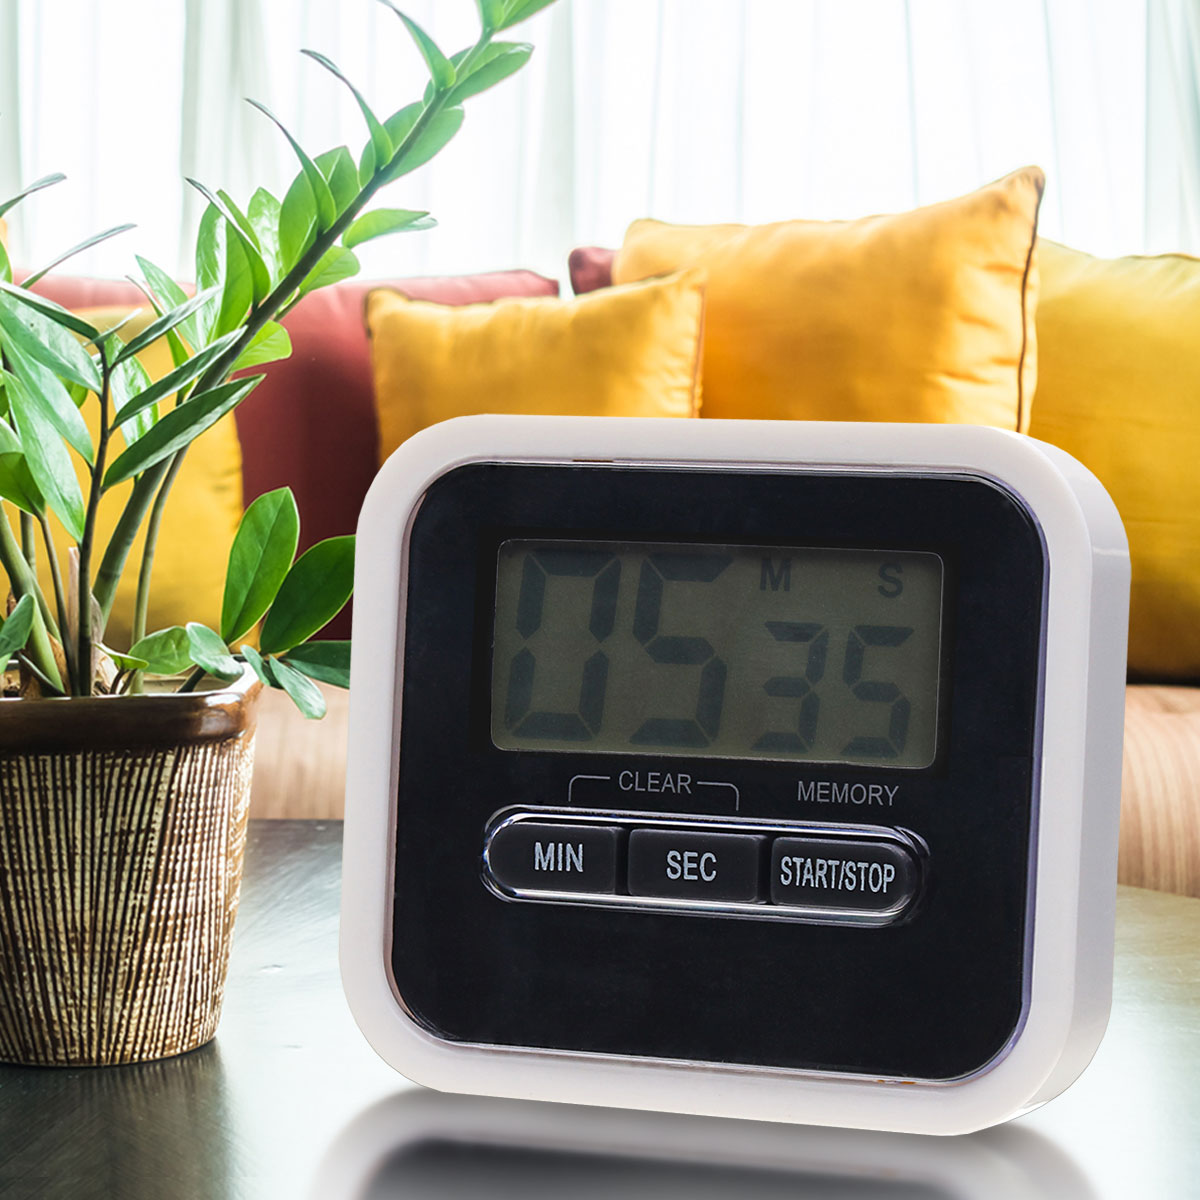 LCD Display Digital Home Kitchen Cooking Timer Alarm Count UP Down Clock Alarm